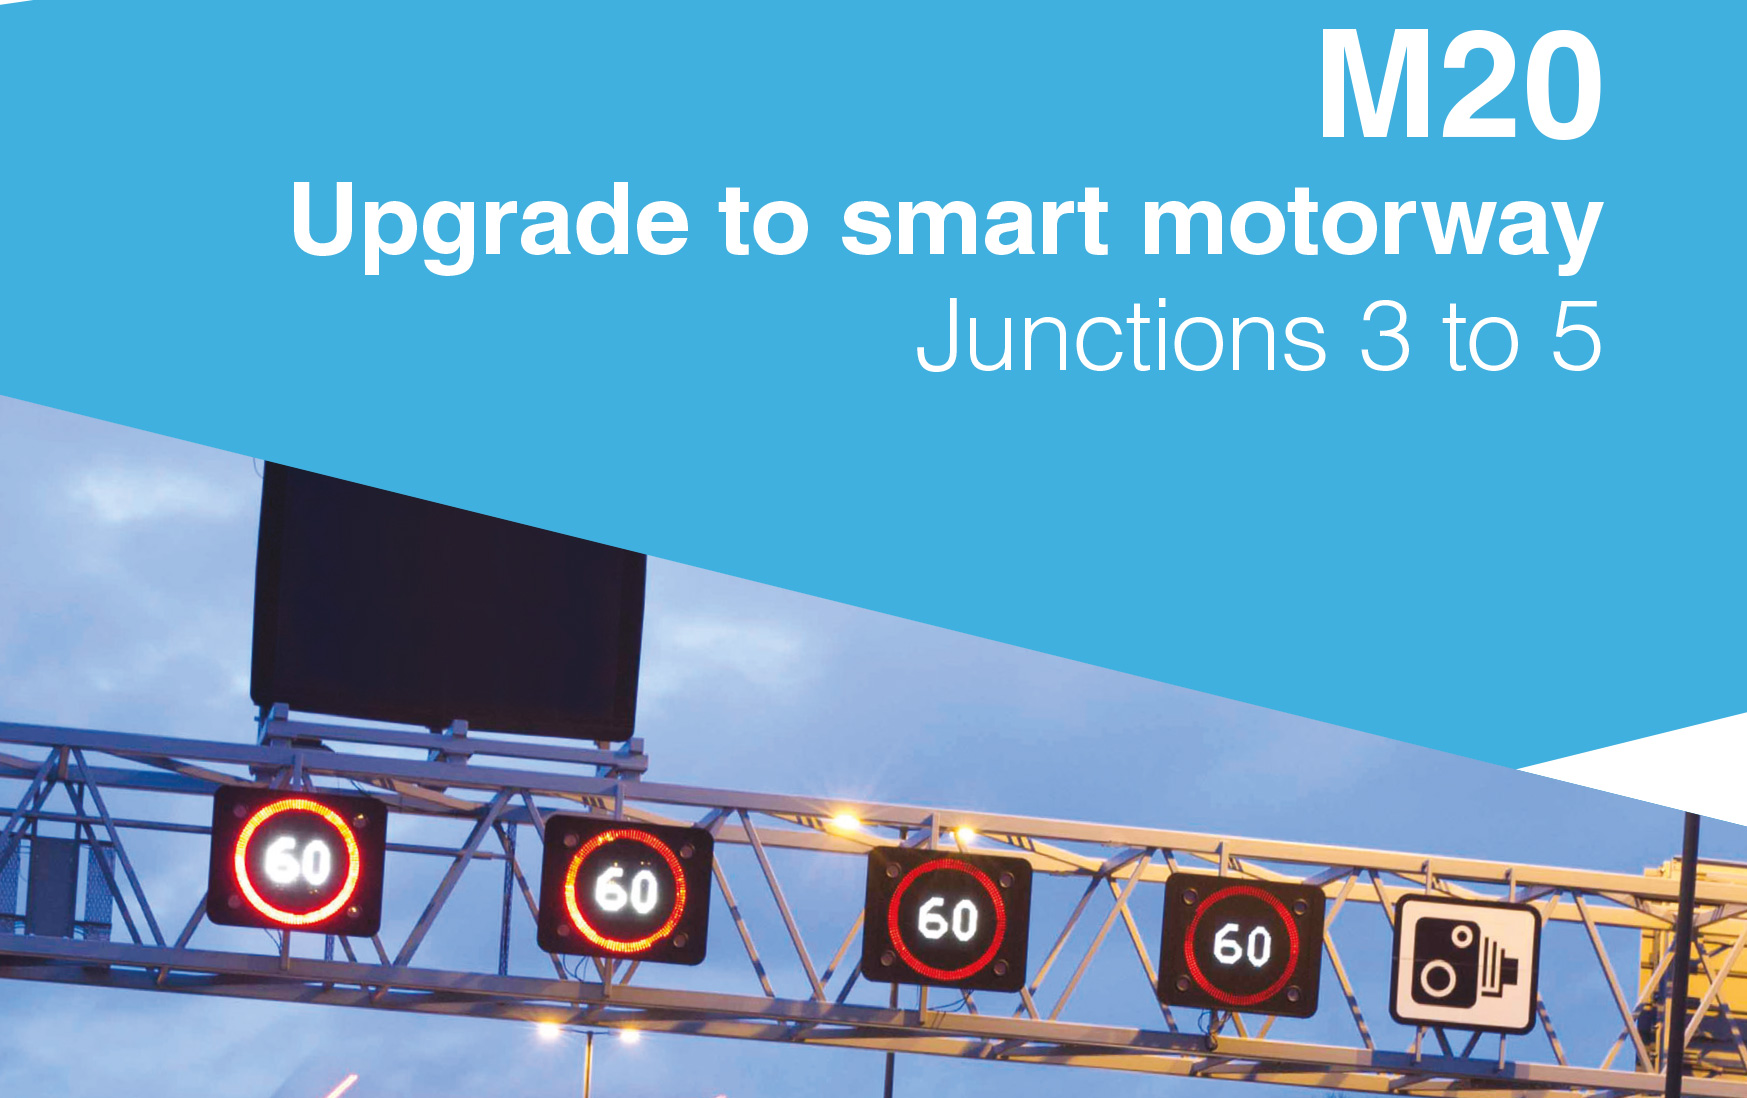 Upgrade to smart motorway - M20 front cover